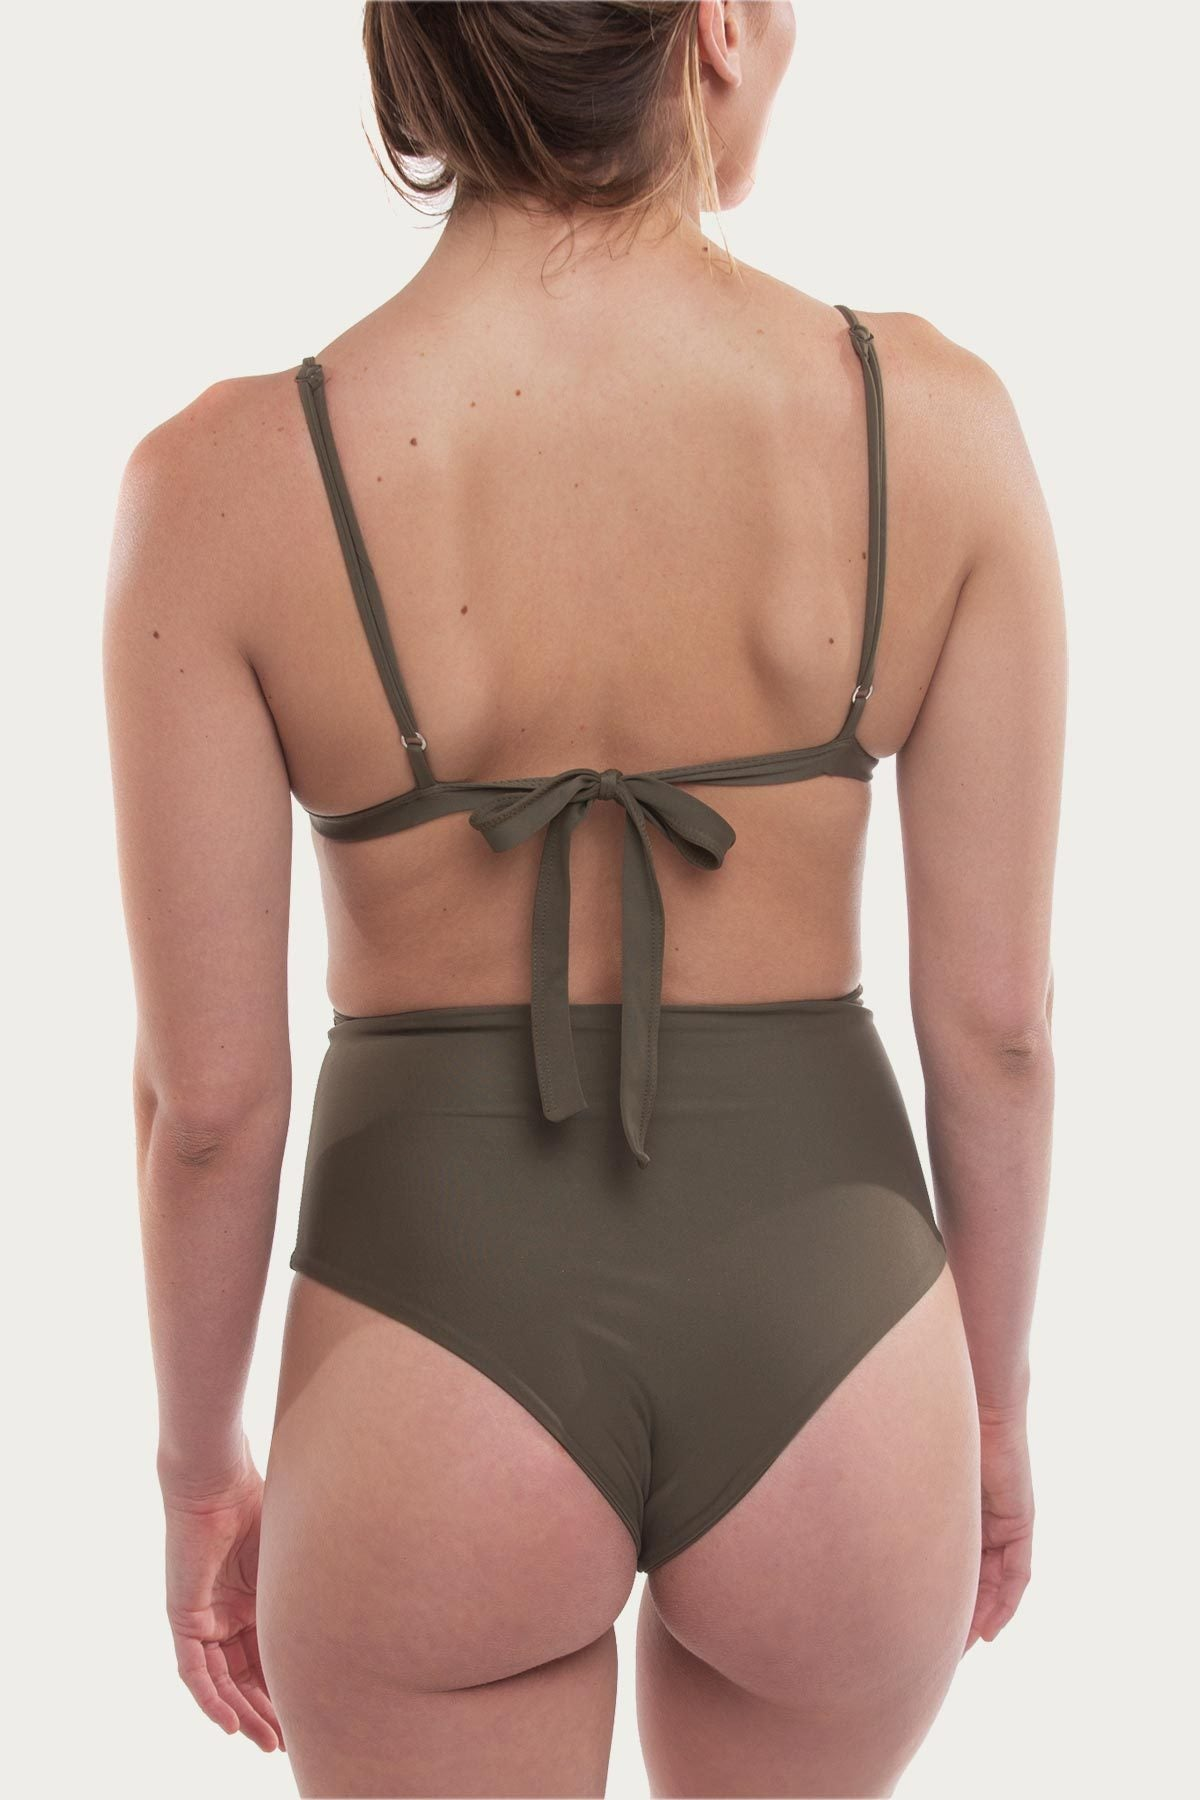 Swamis Bottom - Olive Green - The Bikini Movement